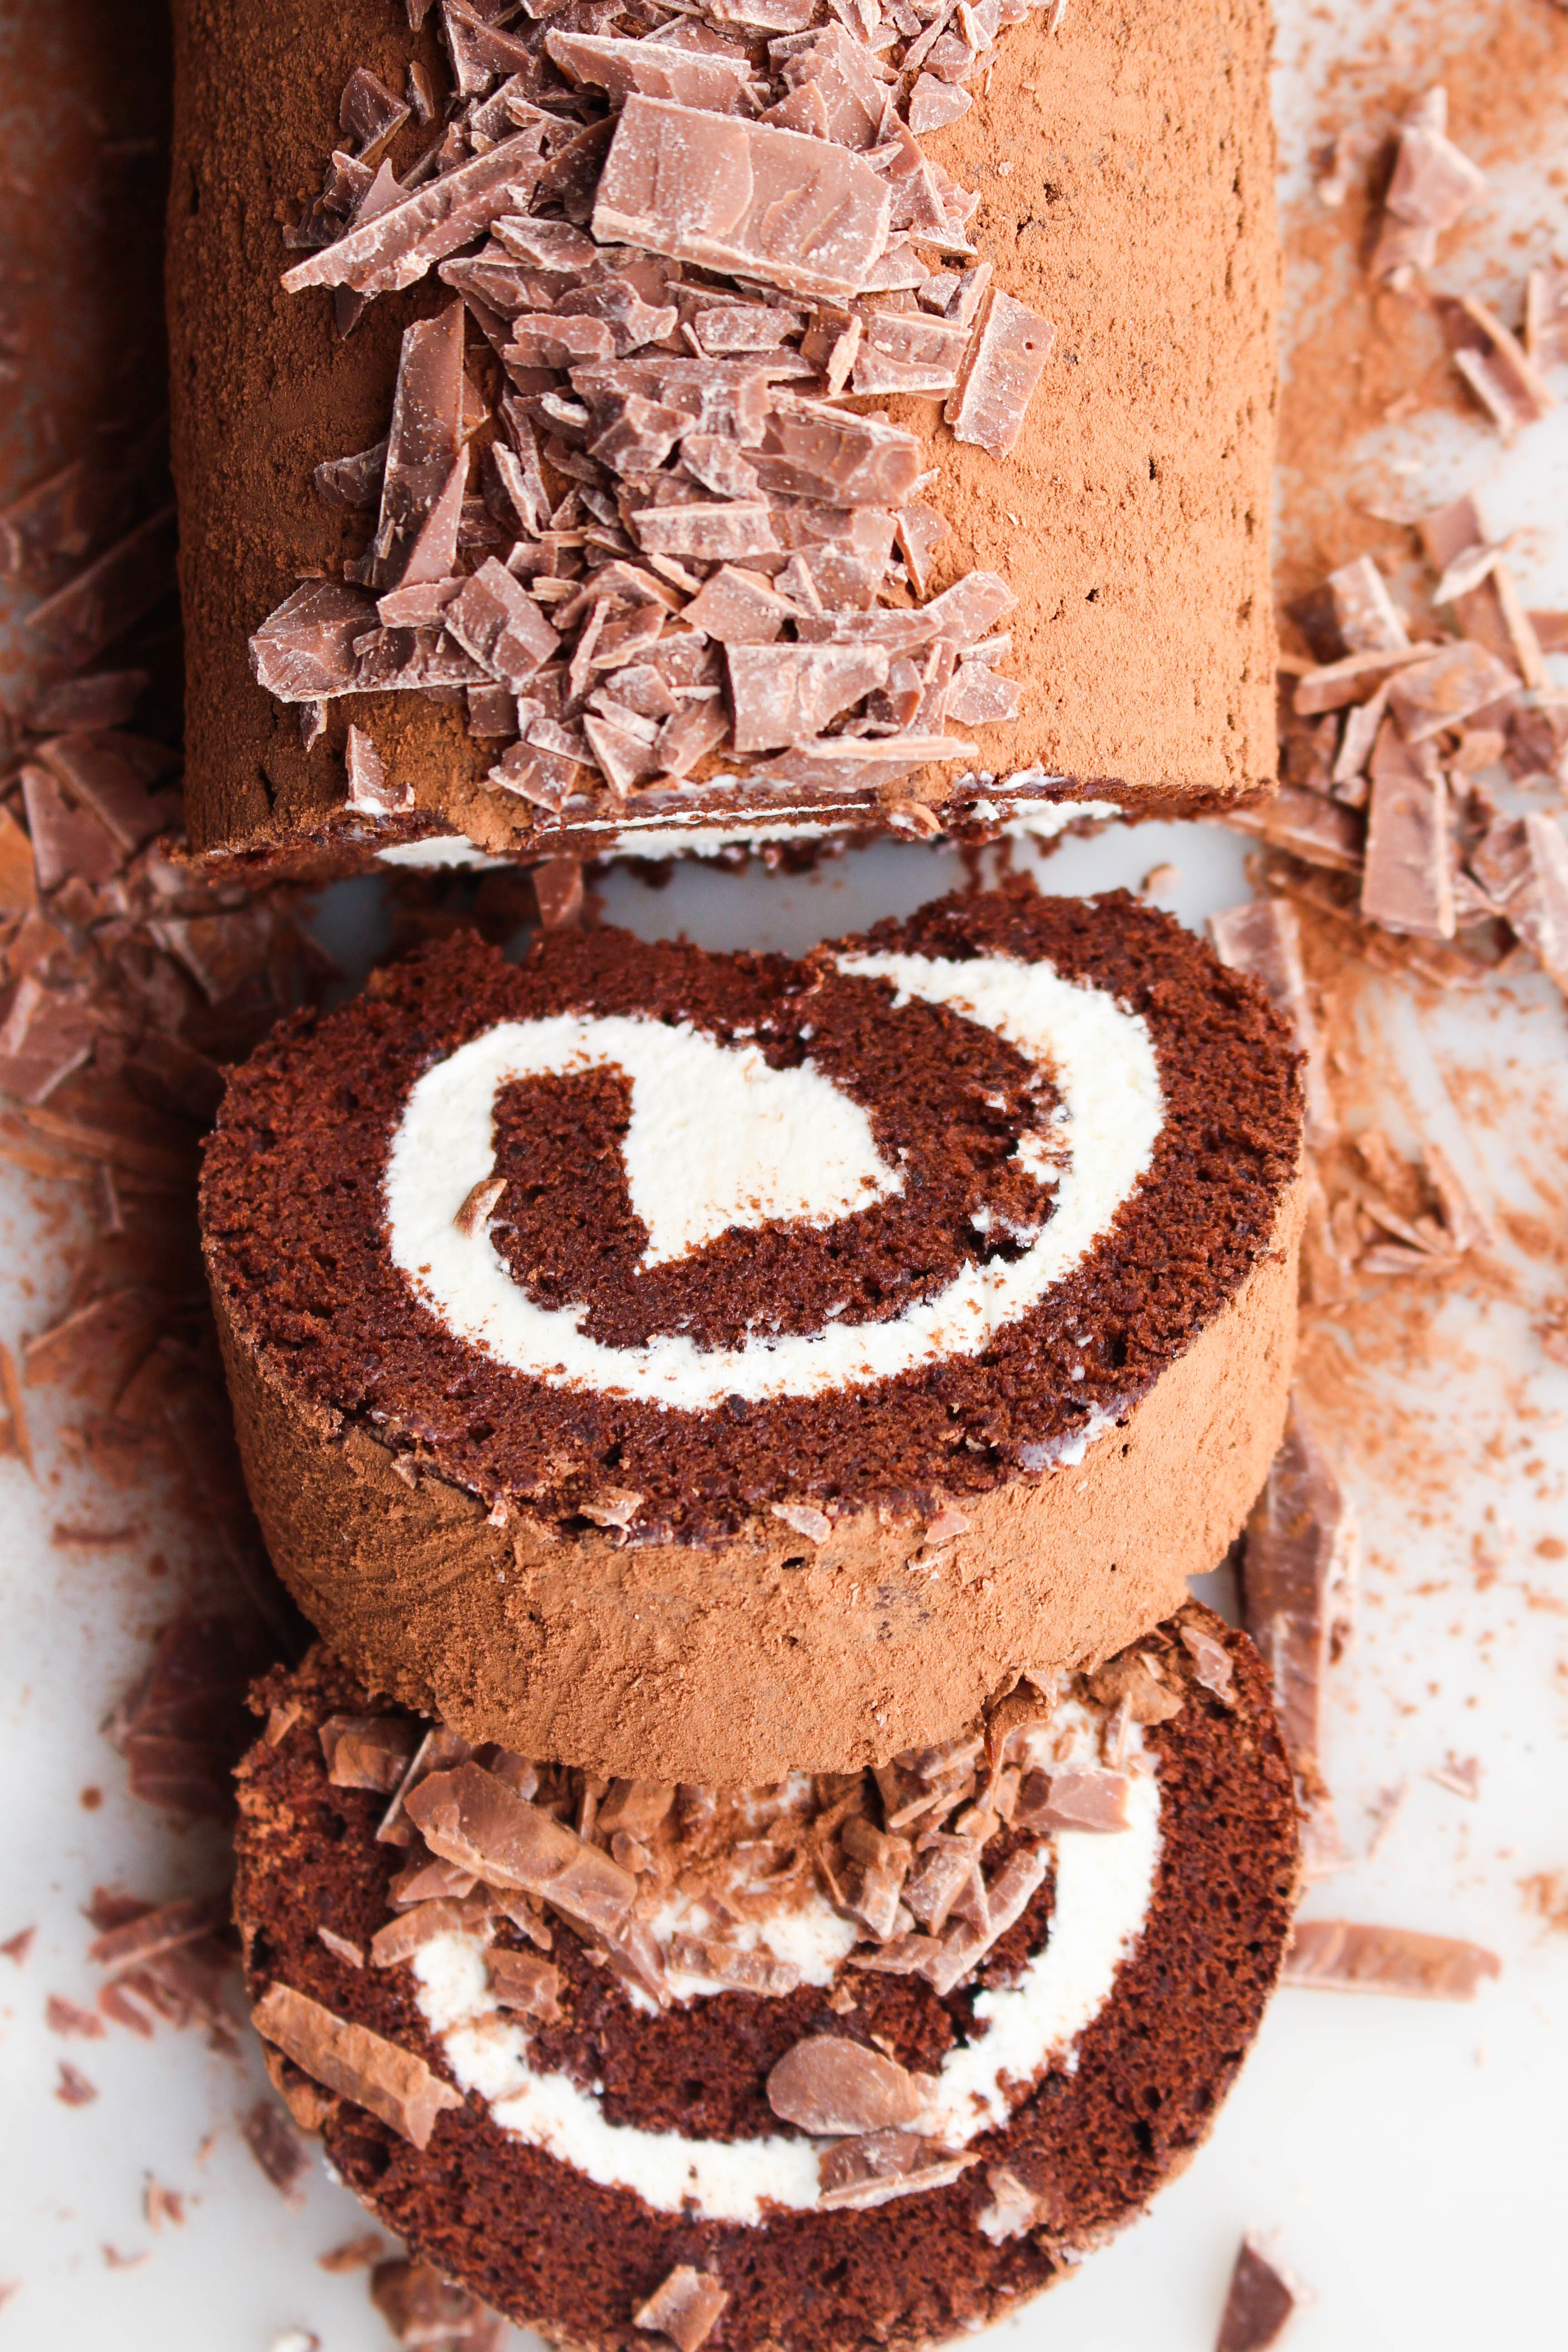 How To Make Chocolate And Mashmallow Cake Filling